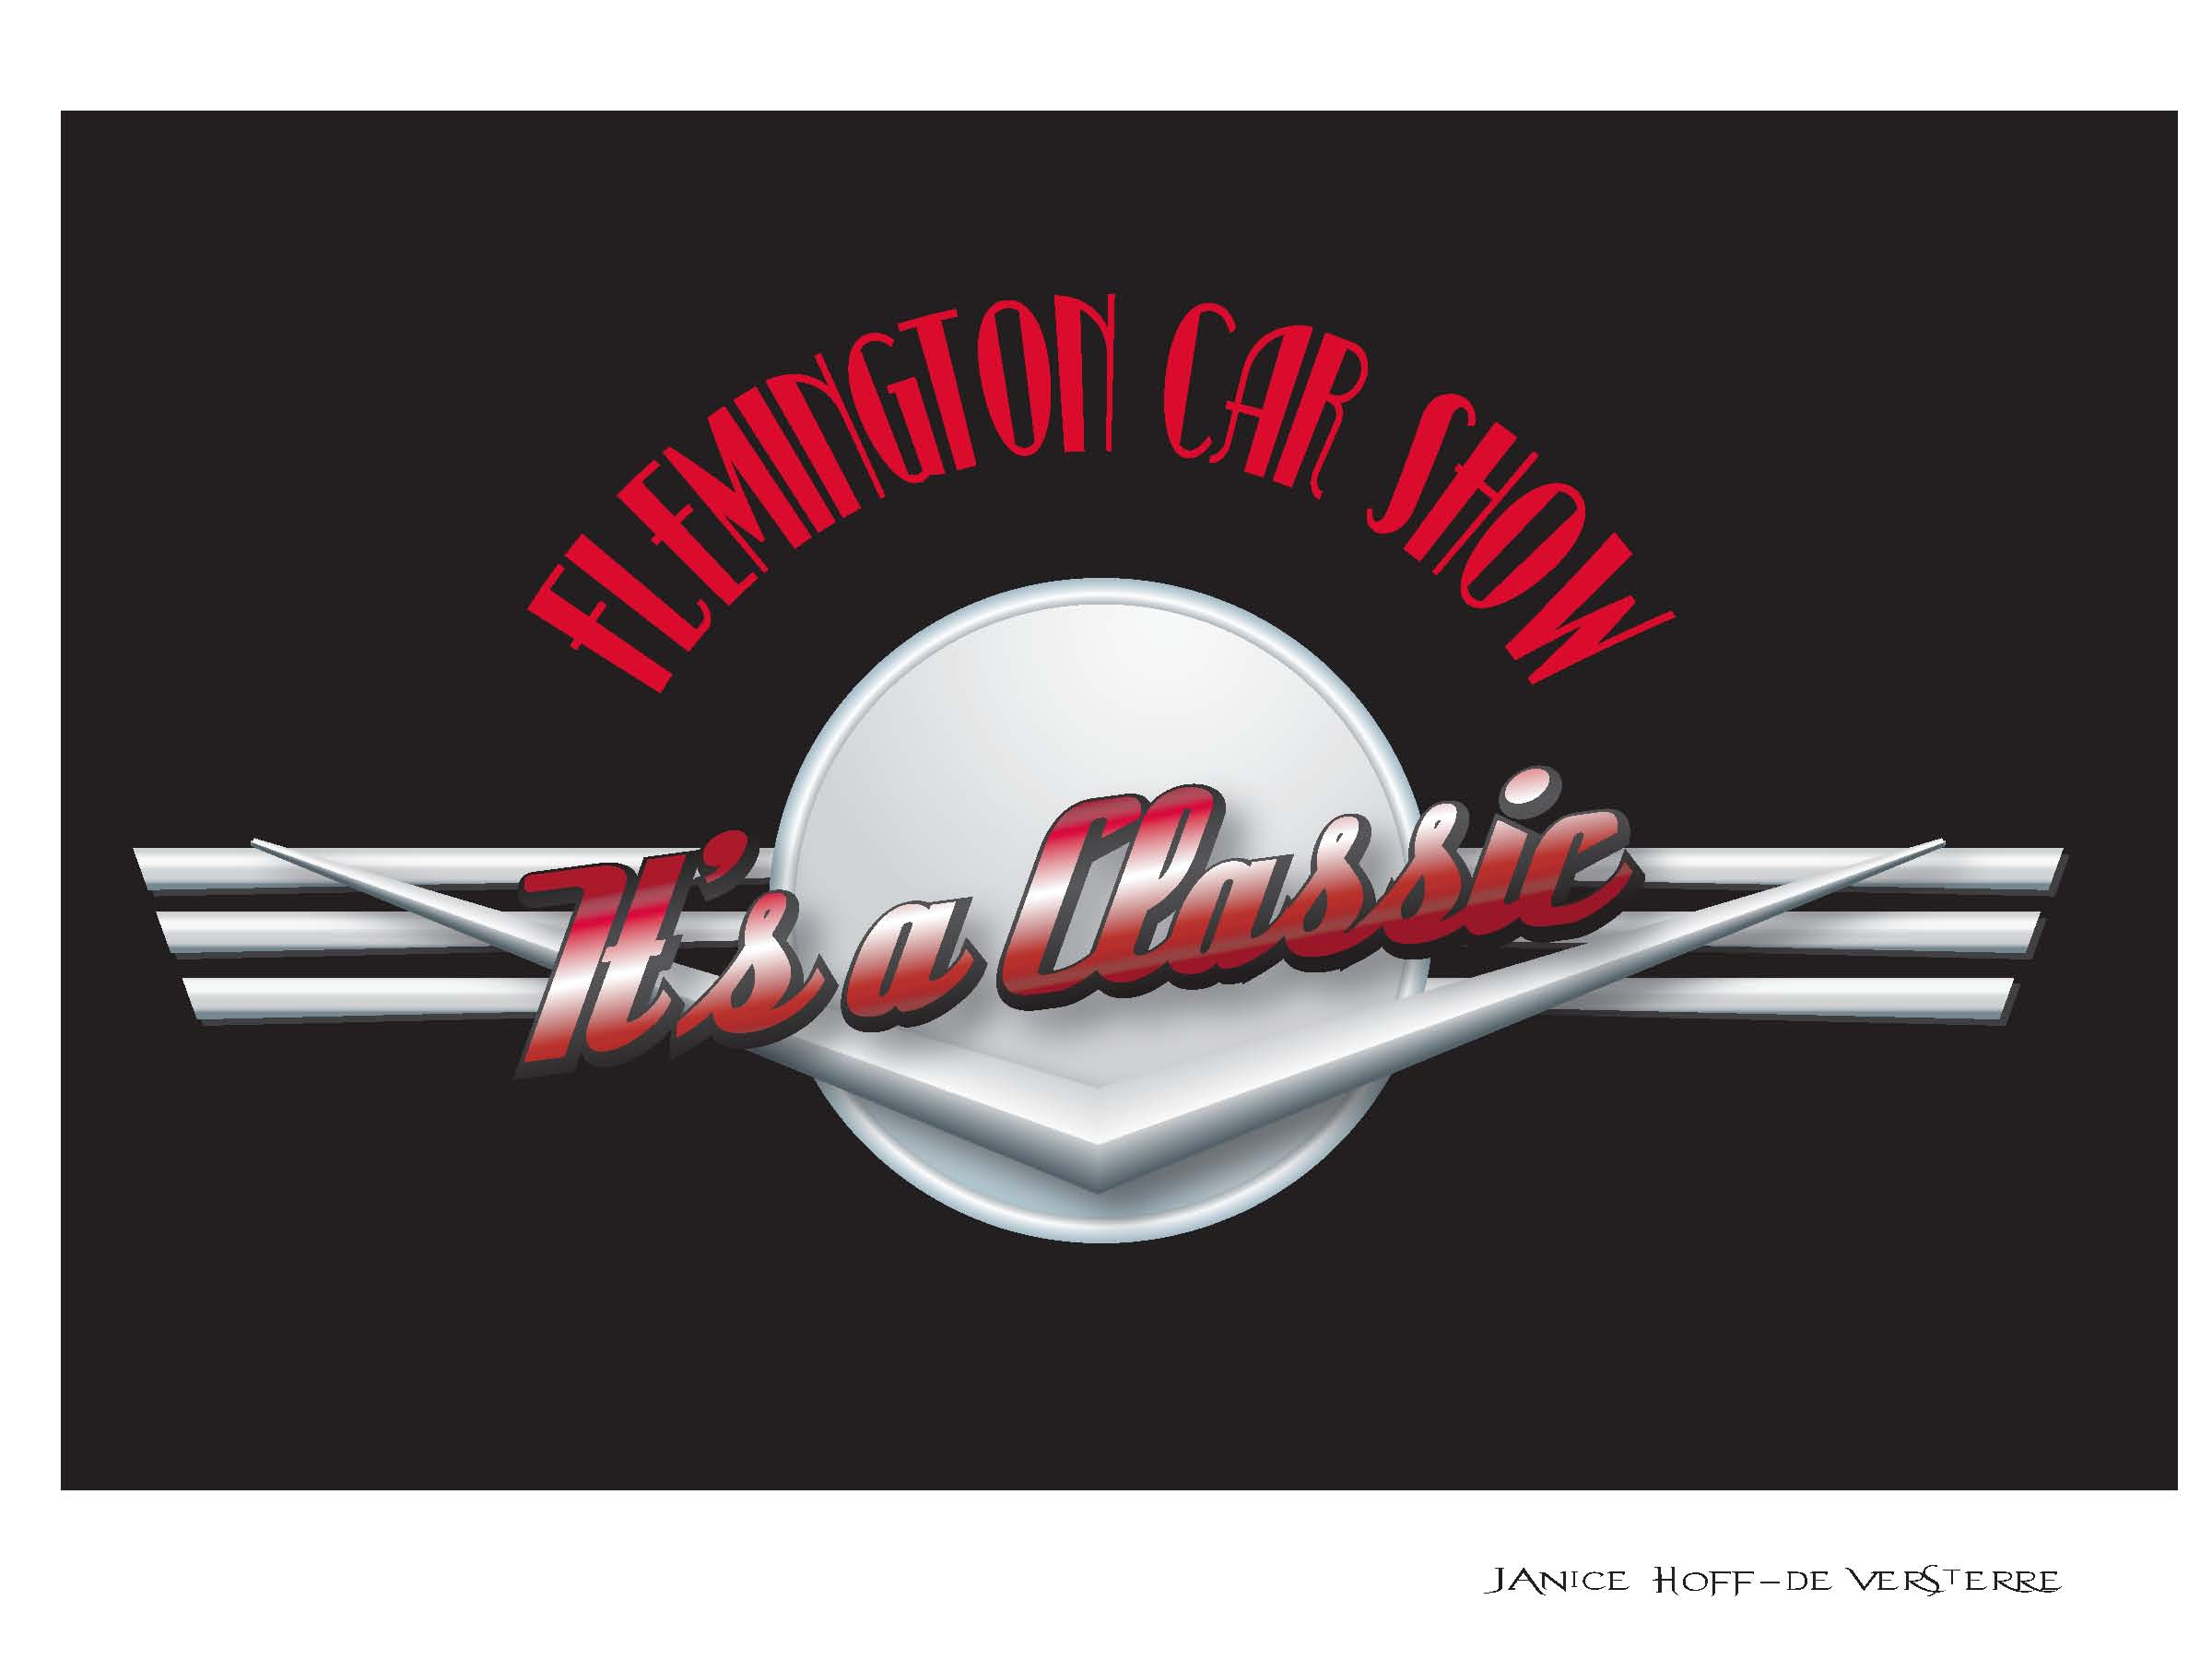 car show t shirt designs share on ford car showt shirt